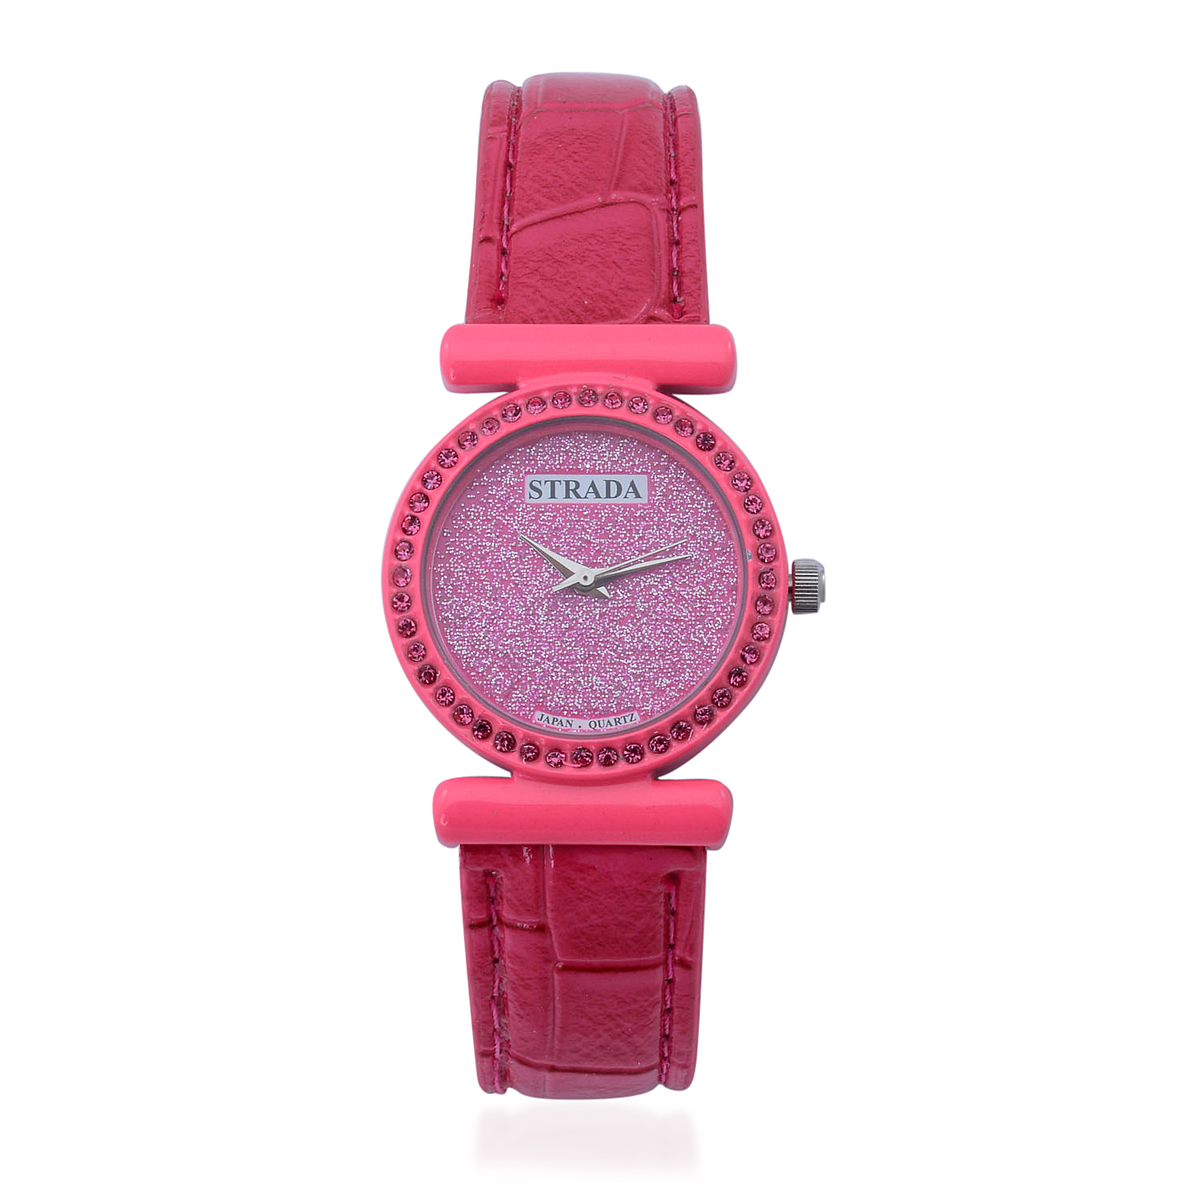 STRADA Austrian Crystal Japanese Movement Pink Glitter Face Watch with Pink Band and Stainless Steel Back